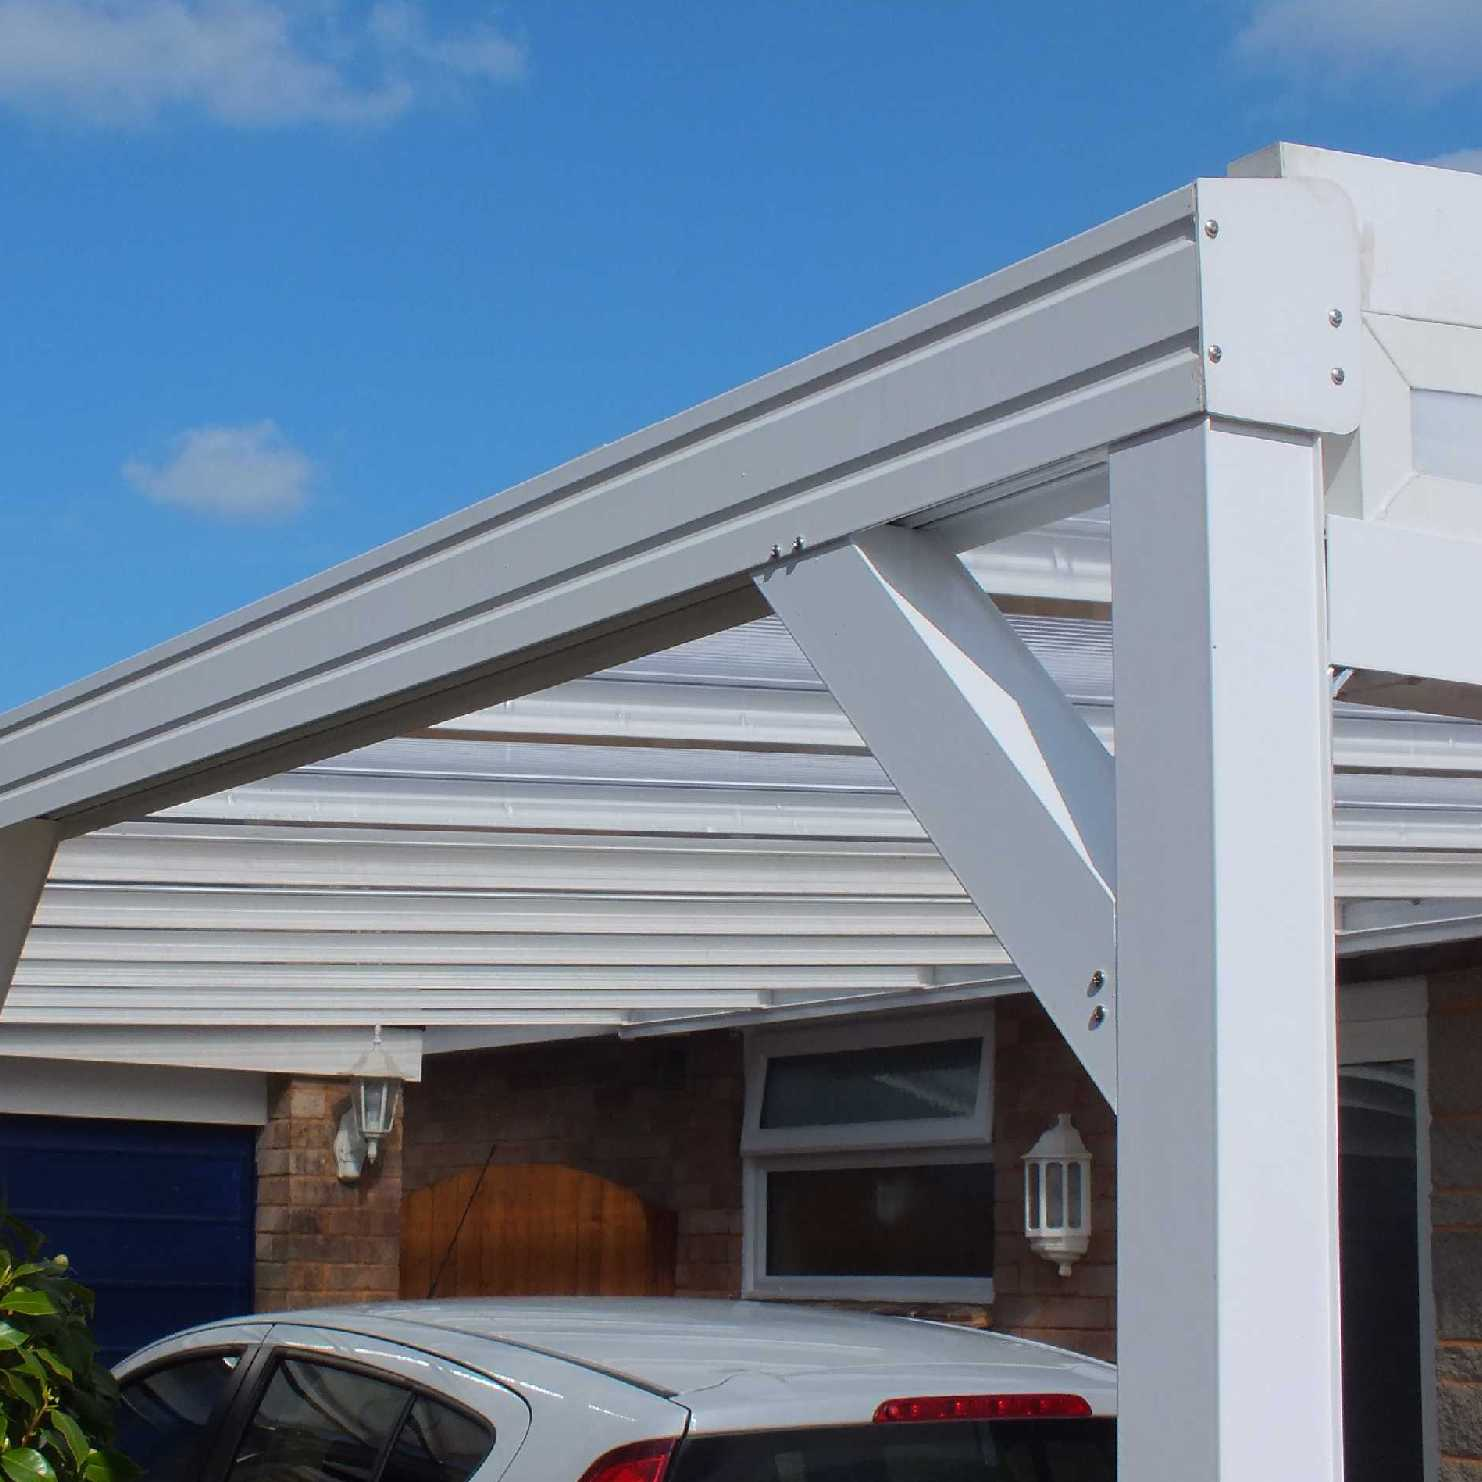 Buy Omega Smart Lean-To Canopy with 16mm Polycarbonate Glazing - 3.5m (W) x 4.0m (P), (3) Supporting Posts online today